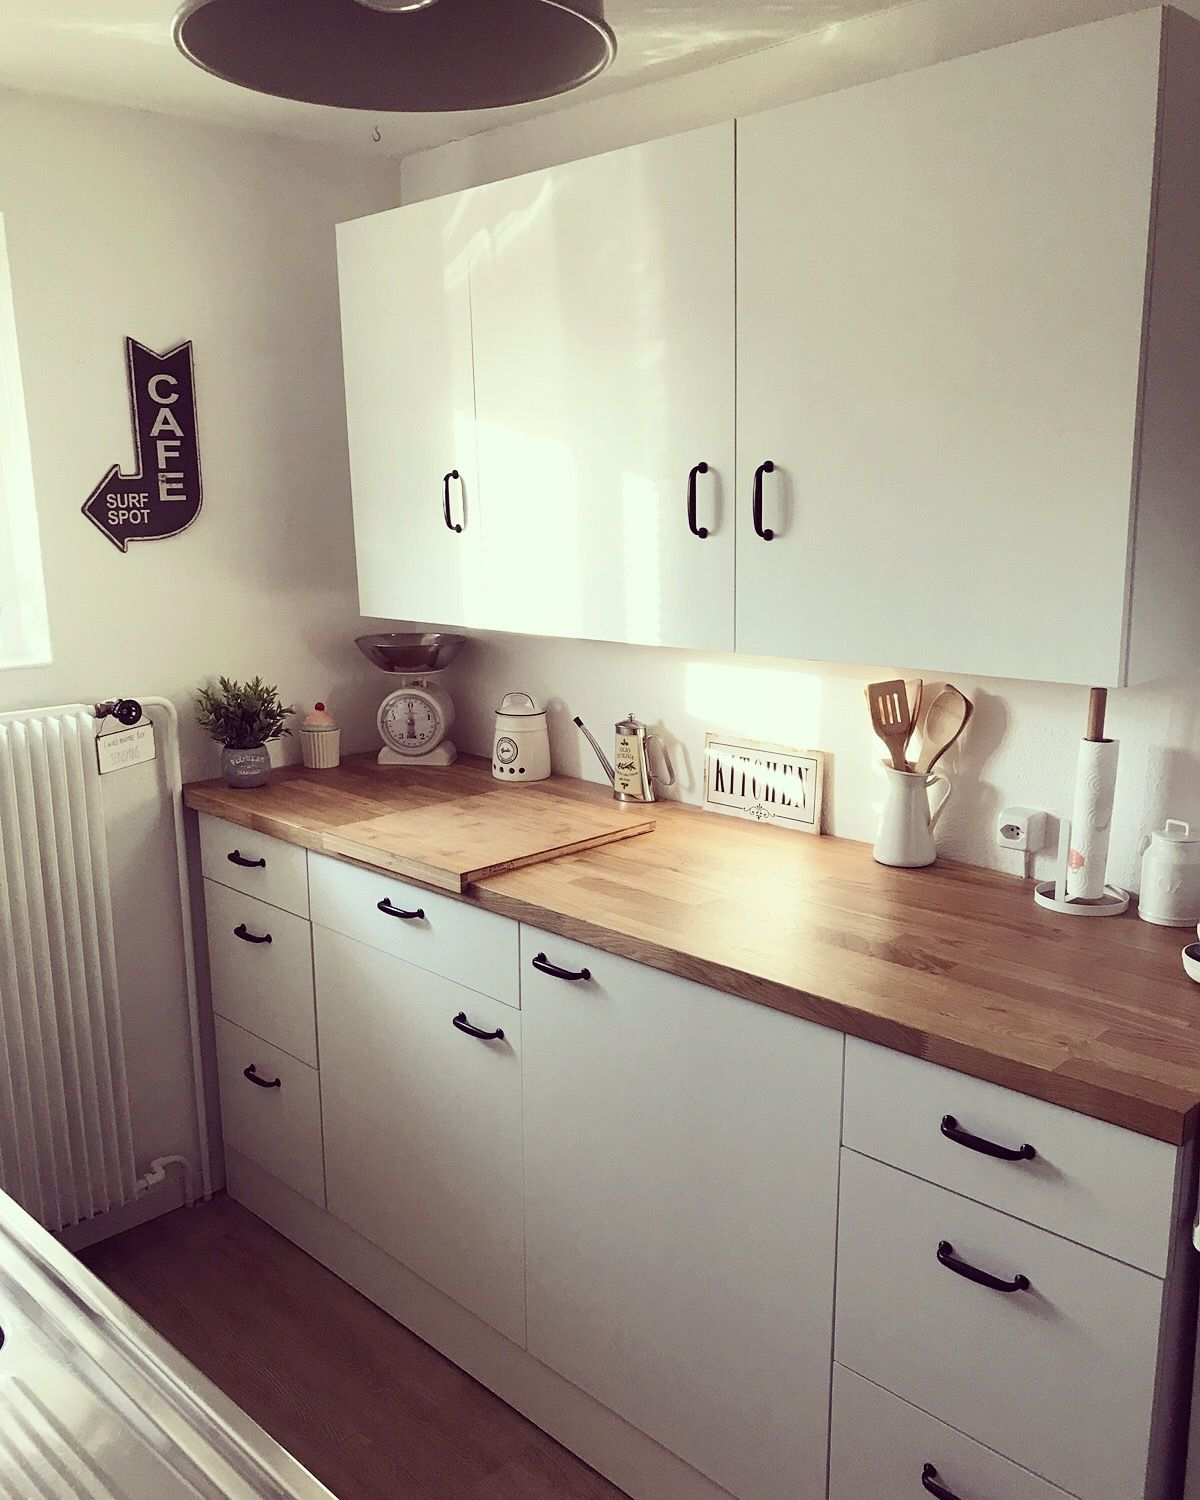 Kleine Küche Ideen Ikea Küche Ikea Knoxhult Karlby Home In 2019 Ikea Kitchen Kitchen